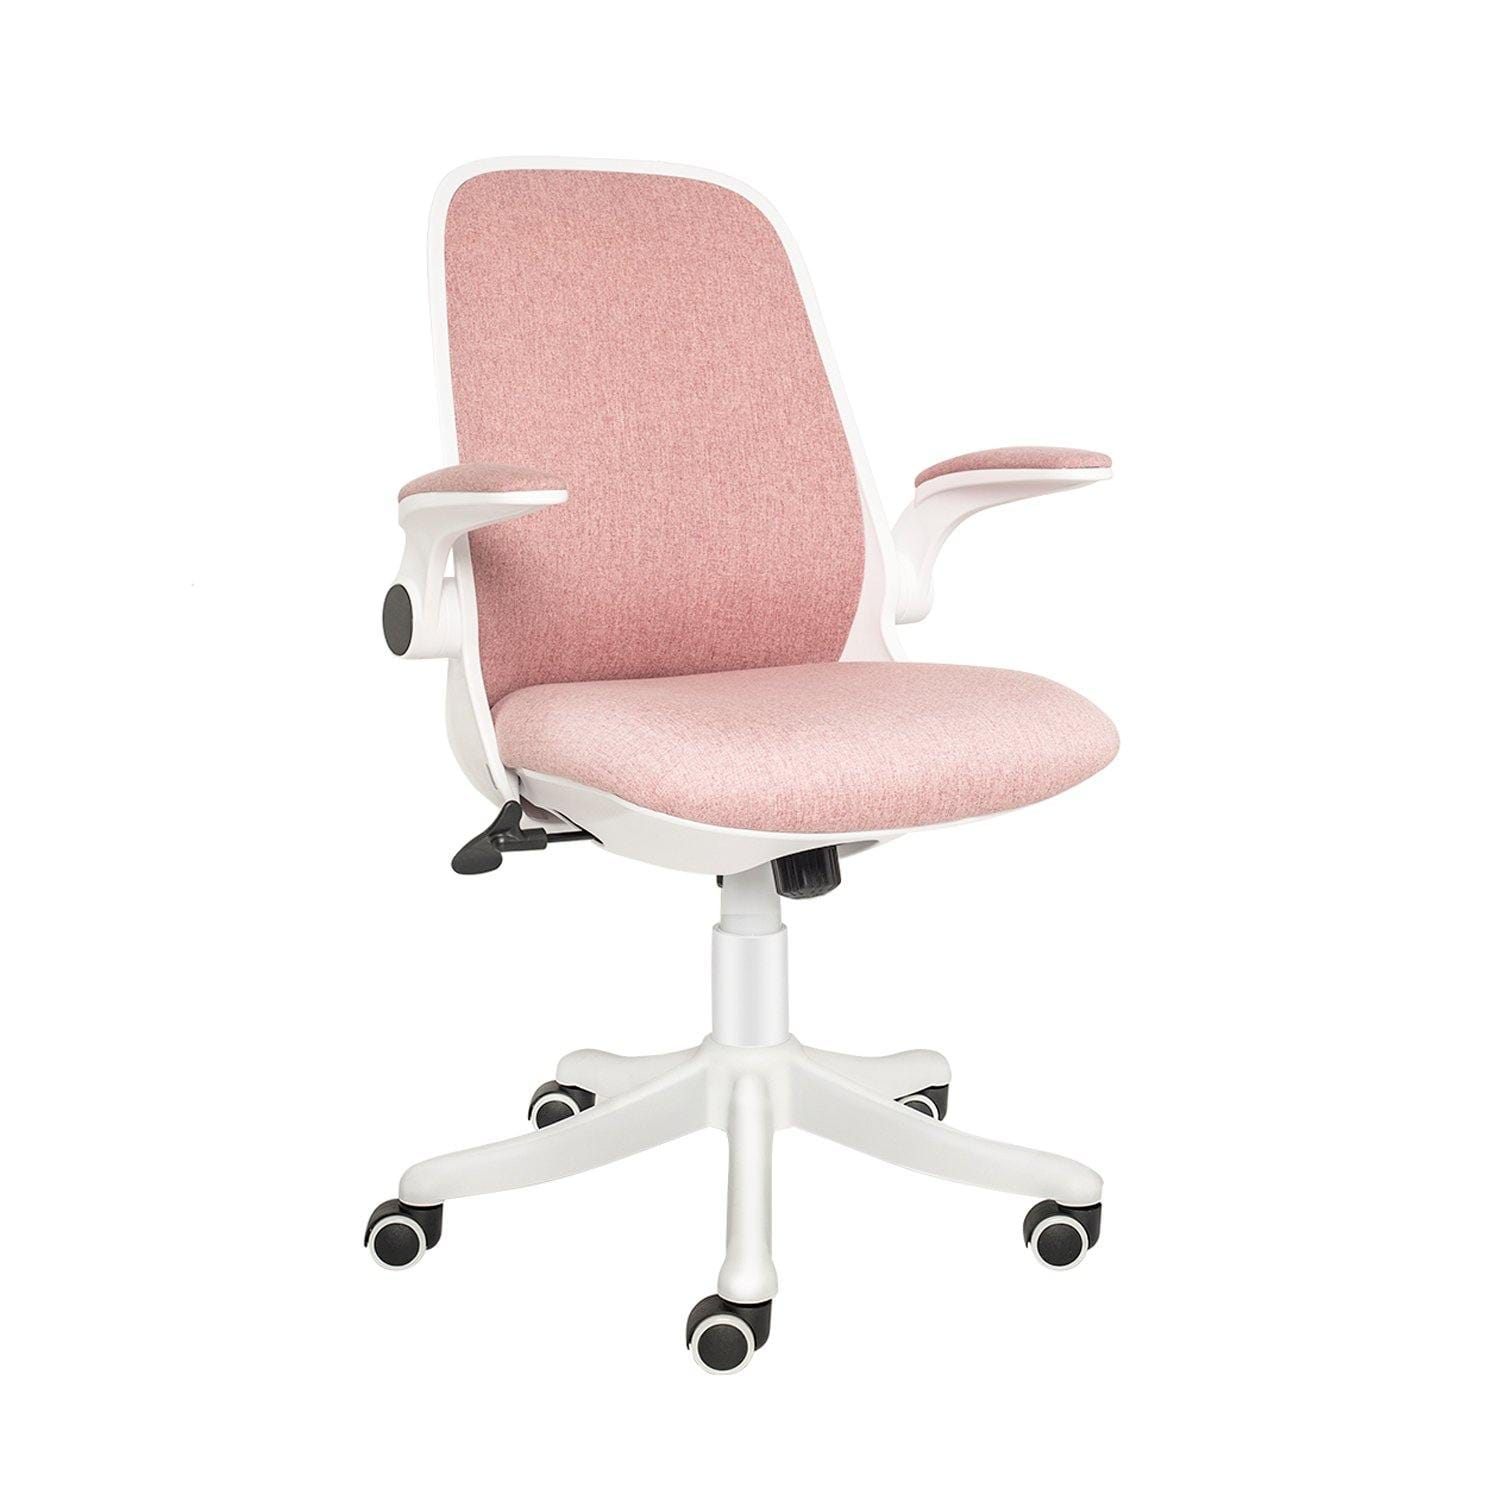 Adjustable Ergonomic Lumbar office Chair